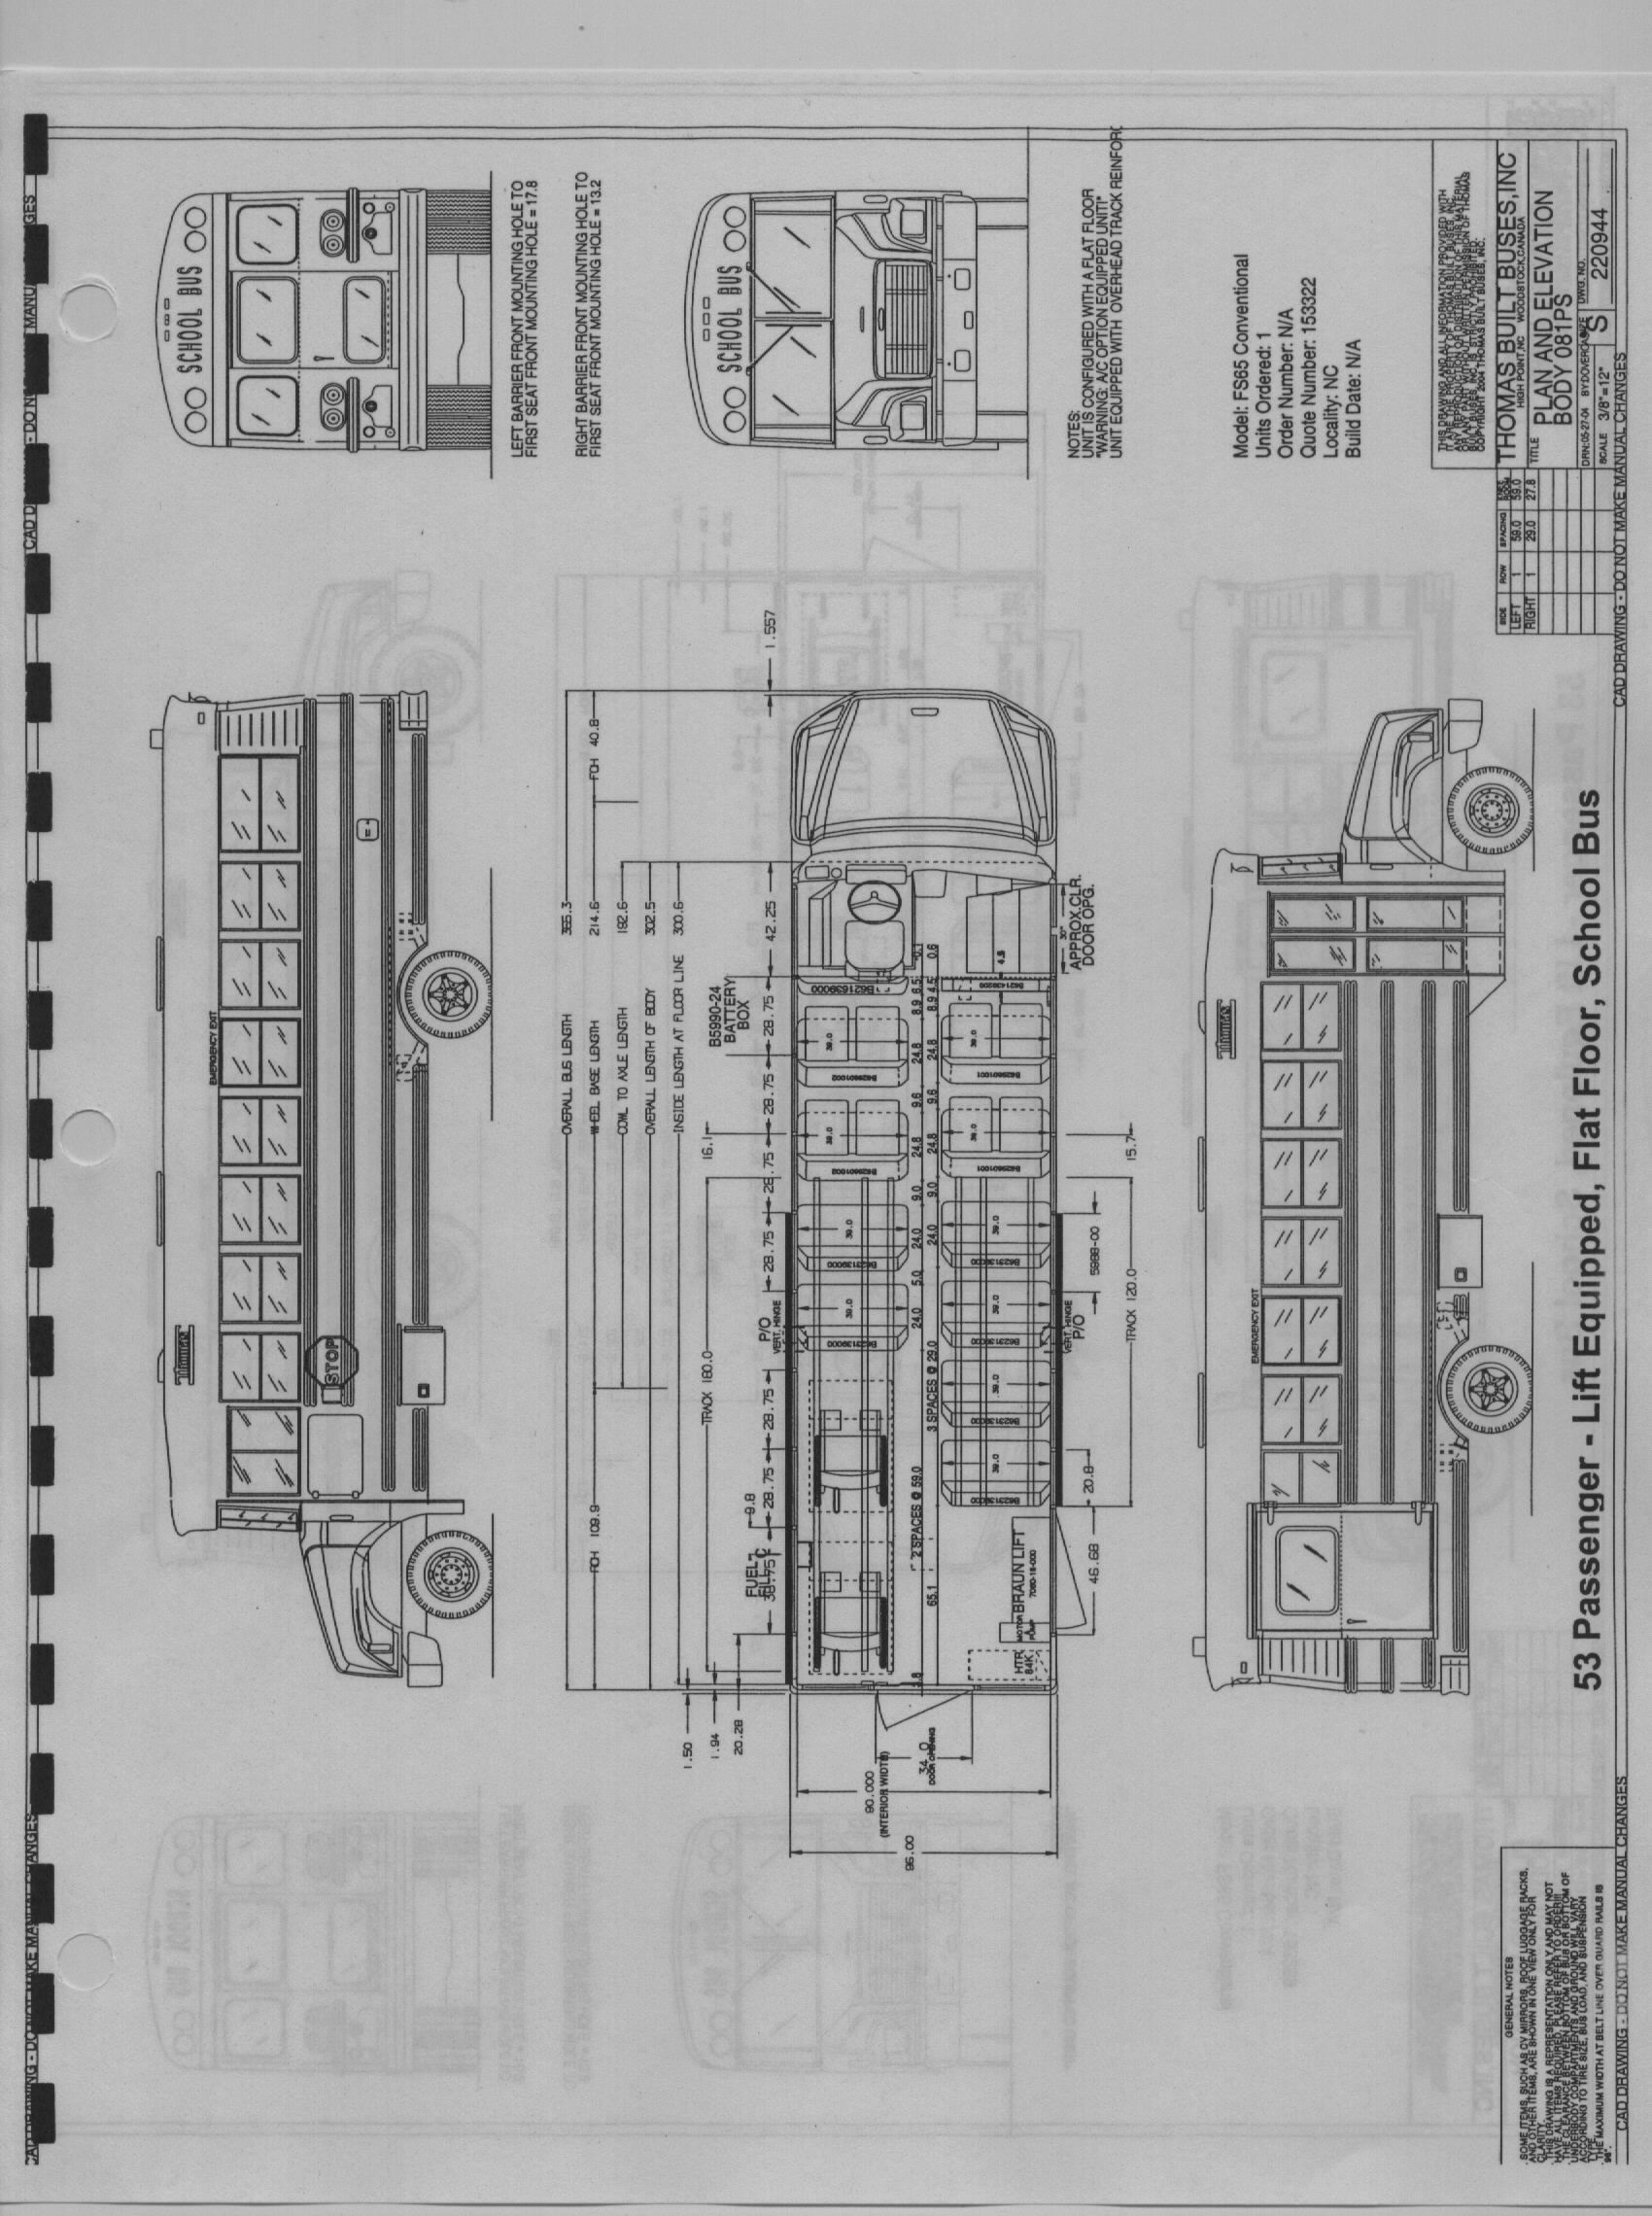 53 Flat Floor Lift air conditioning system of a bus grihon com ac, coolers & devices Split Air Conditioner Wiring Diagram at crackthecode.co